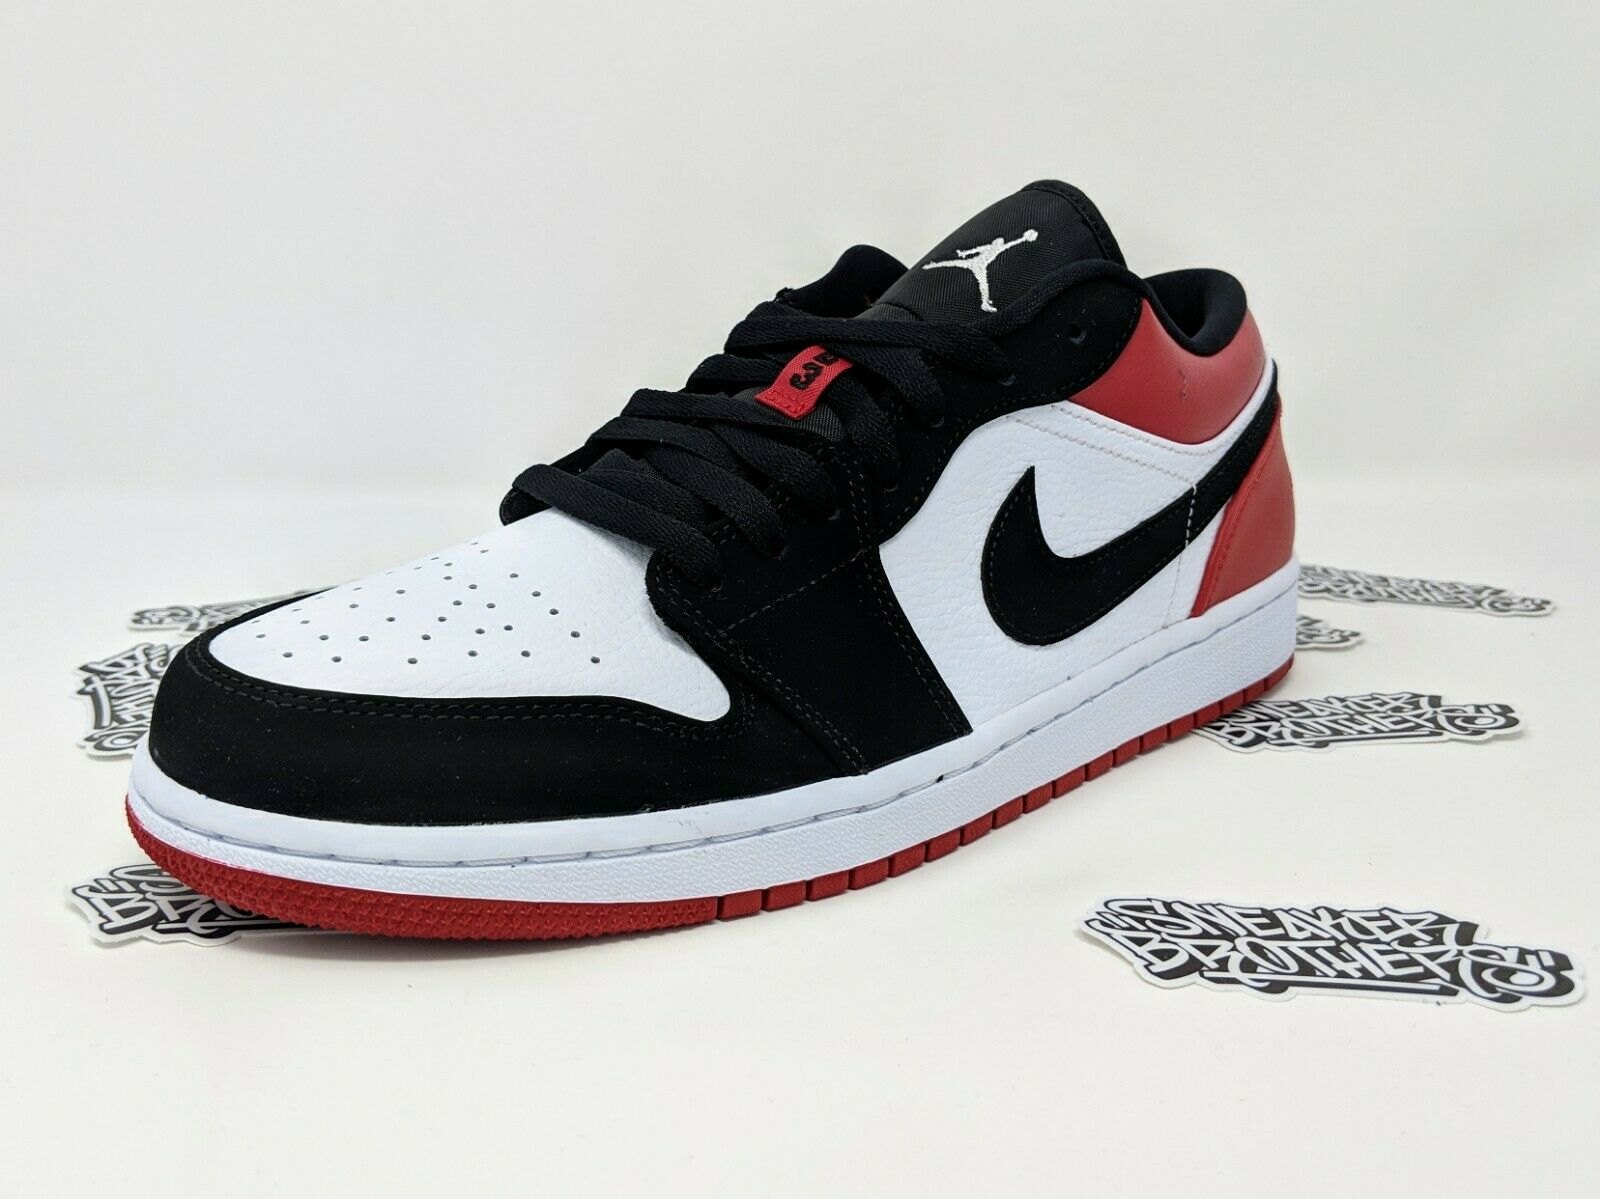 Nike Air Jordan Retro I 1 Low SB Black Toe White Gym Red Men's 553558-116